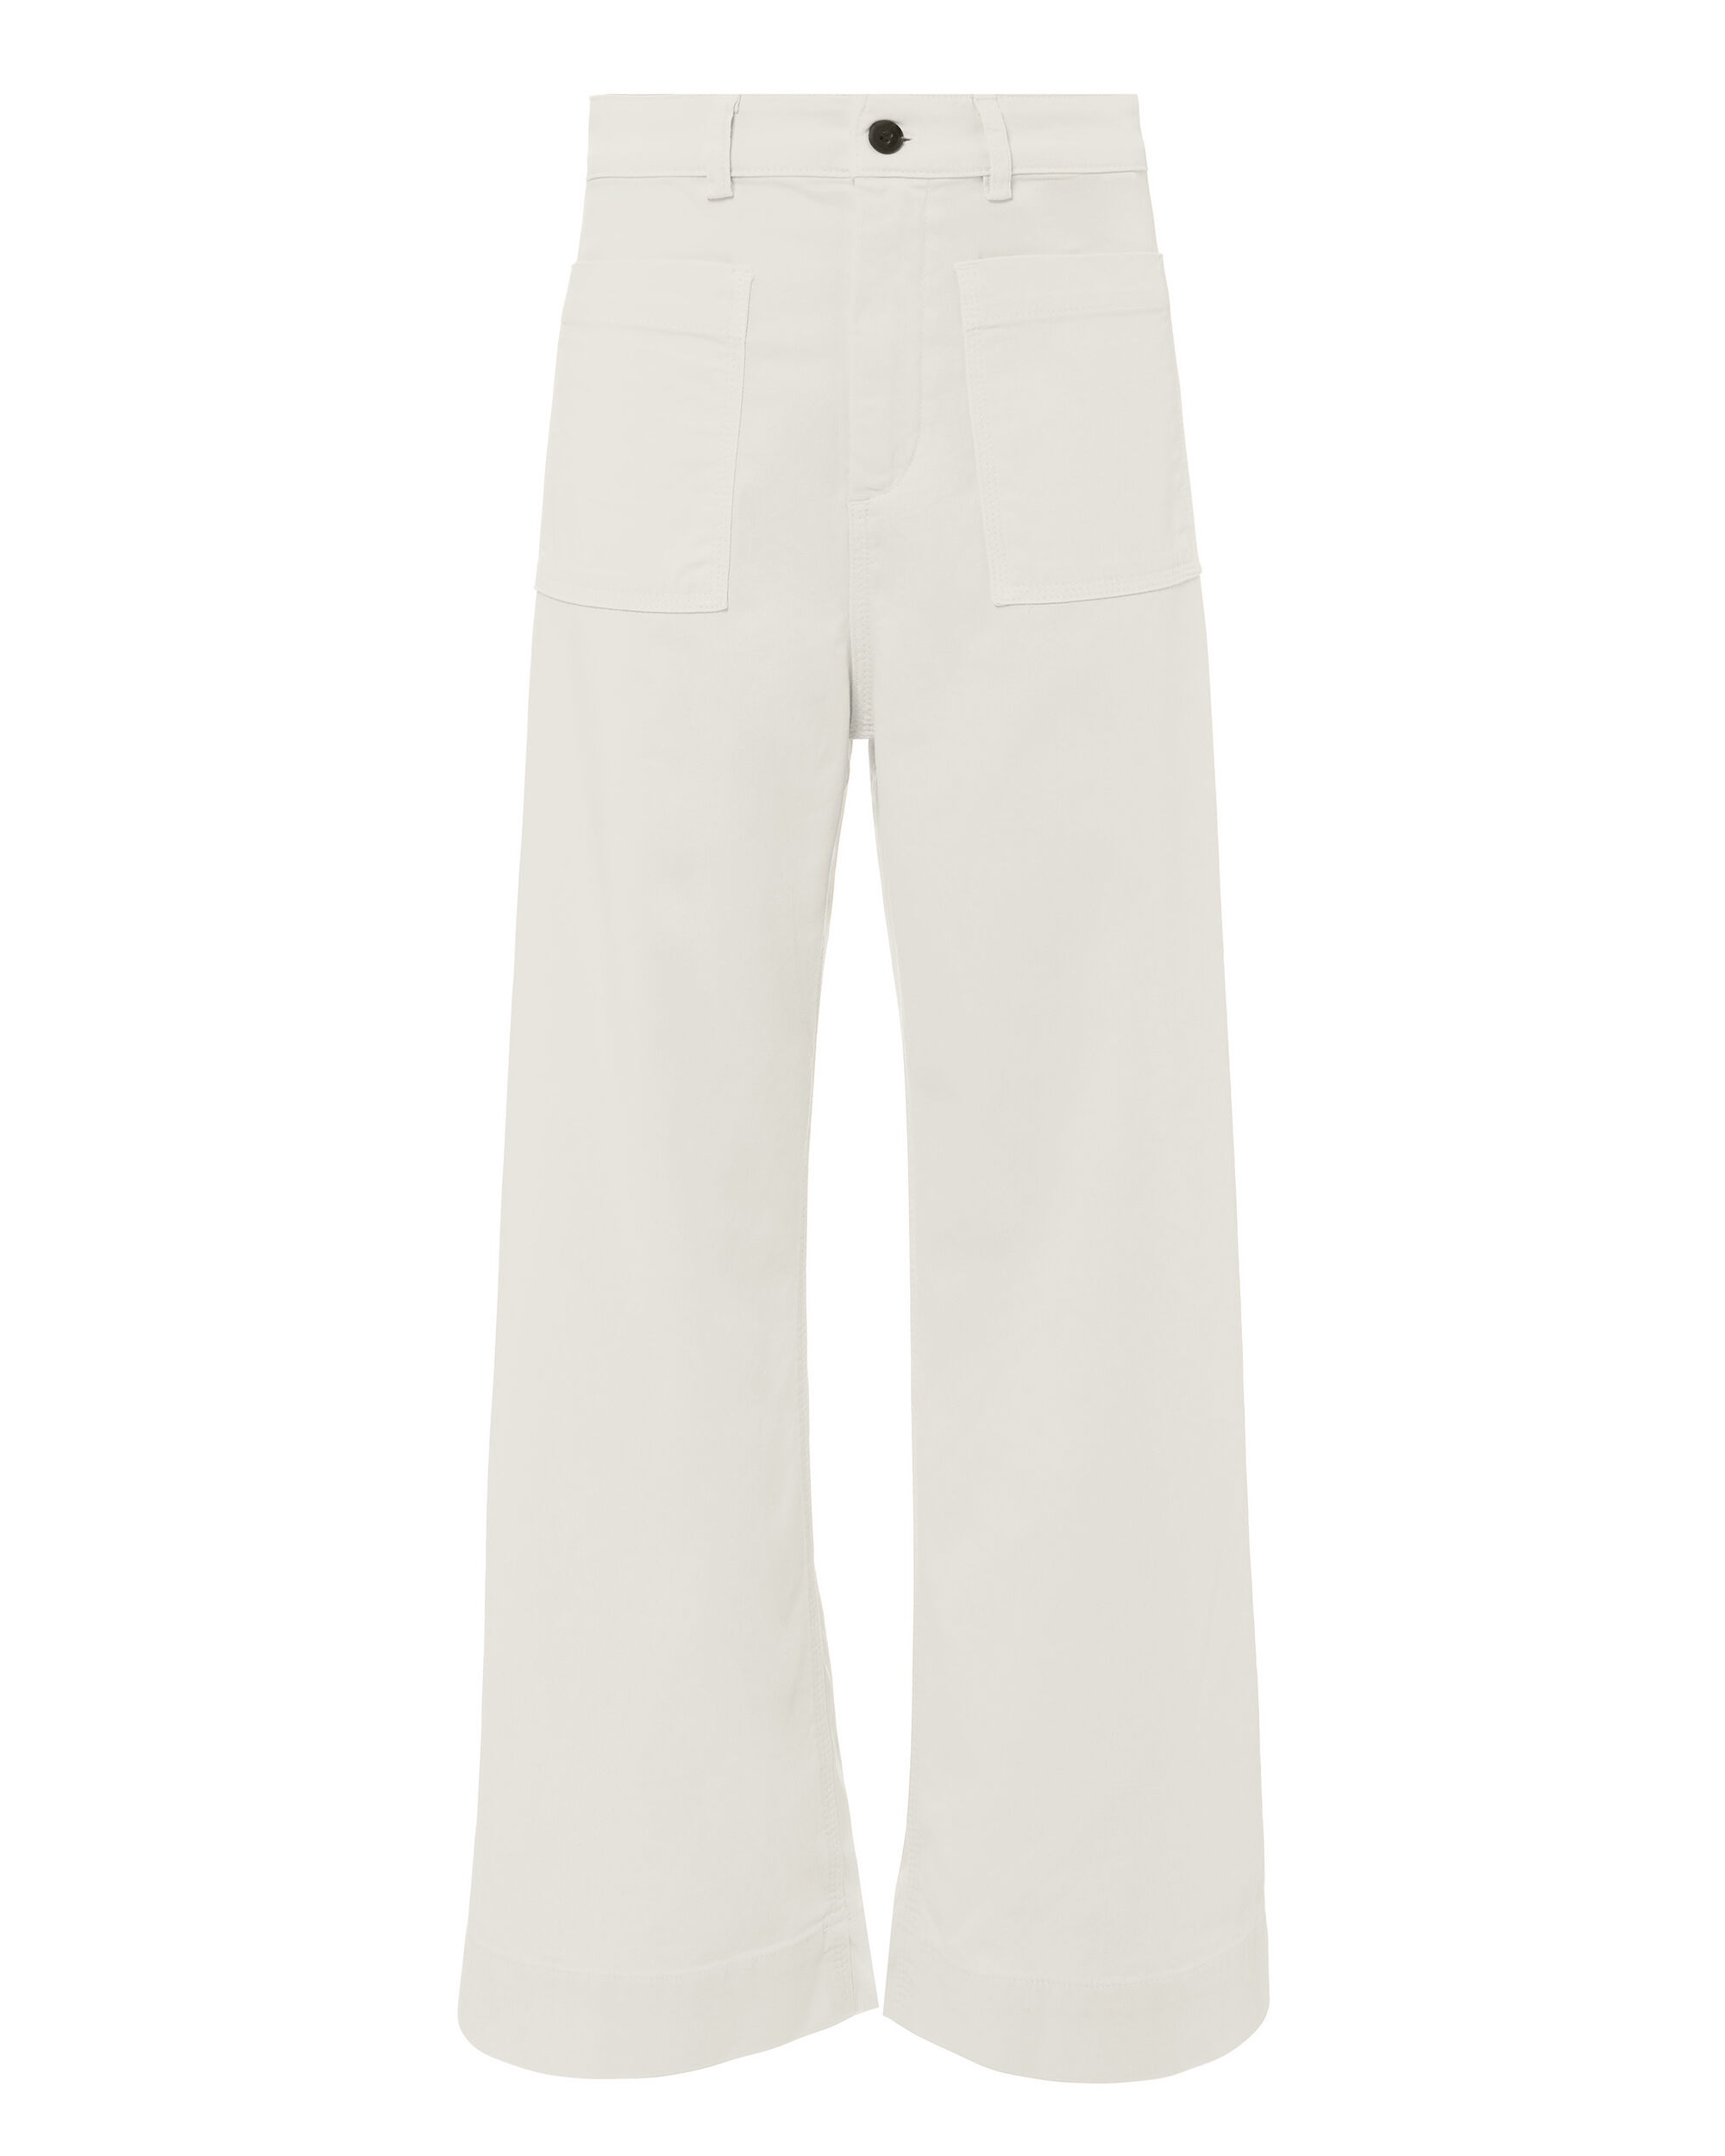 Flynn Lace-Up Trousers, IVORY, hi-res